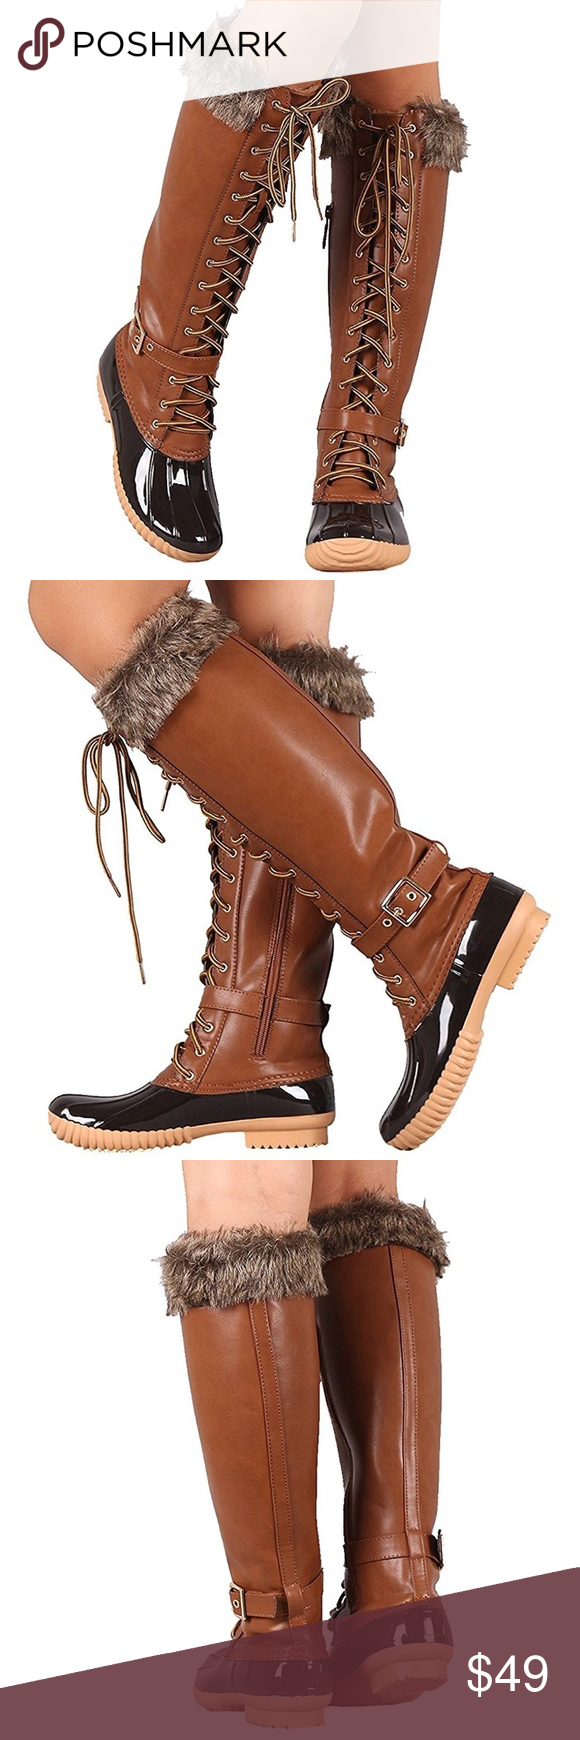 1c3f2beb677 Knee High Waterproof Duck Boots! NEW! Gorgeous vegan leather with faux fur  trim!